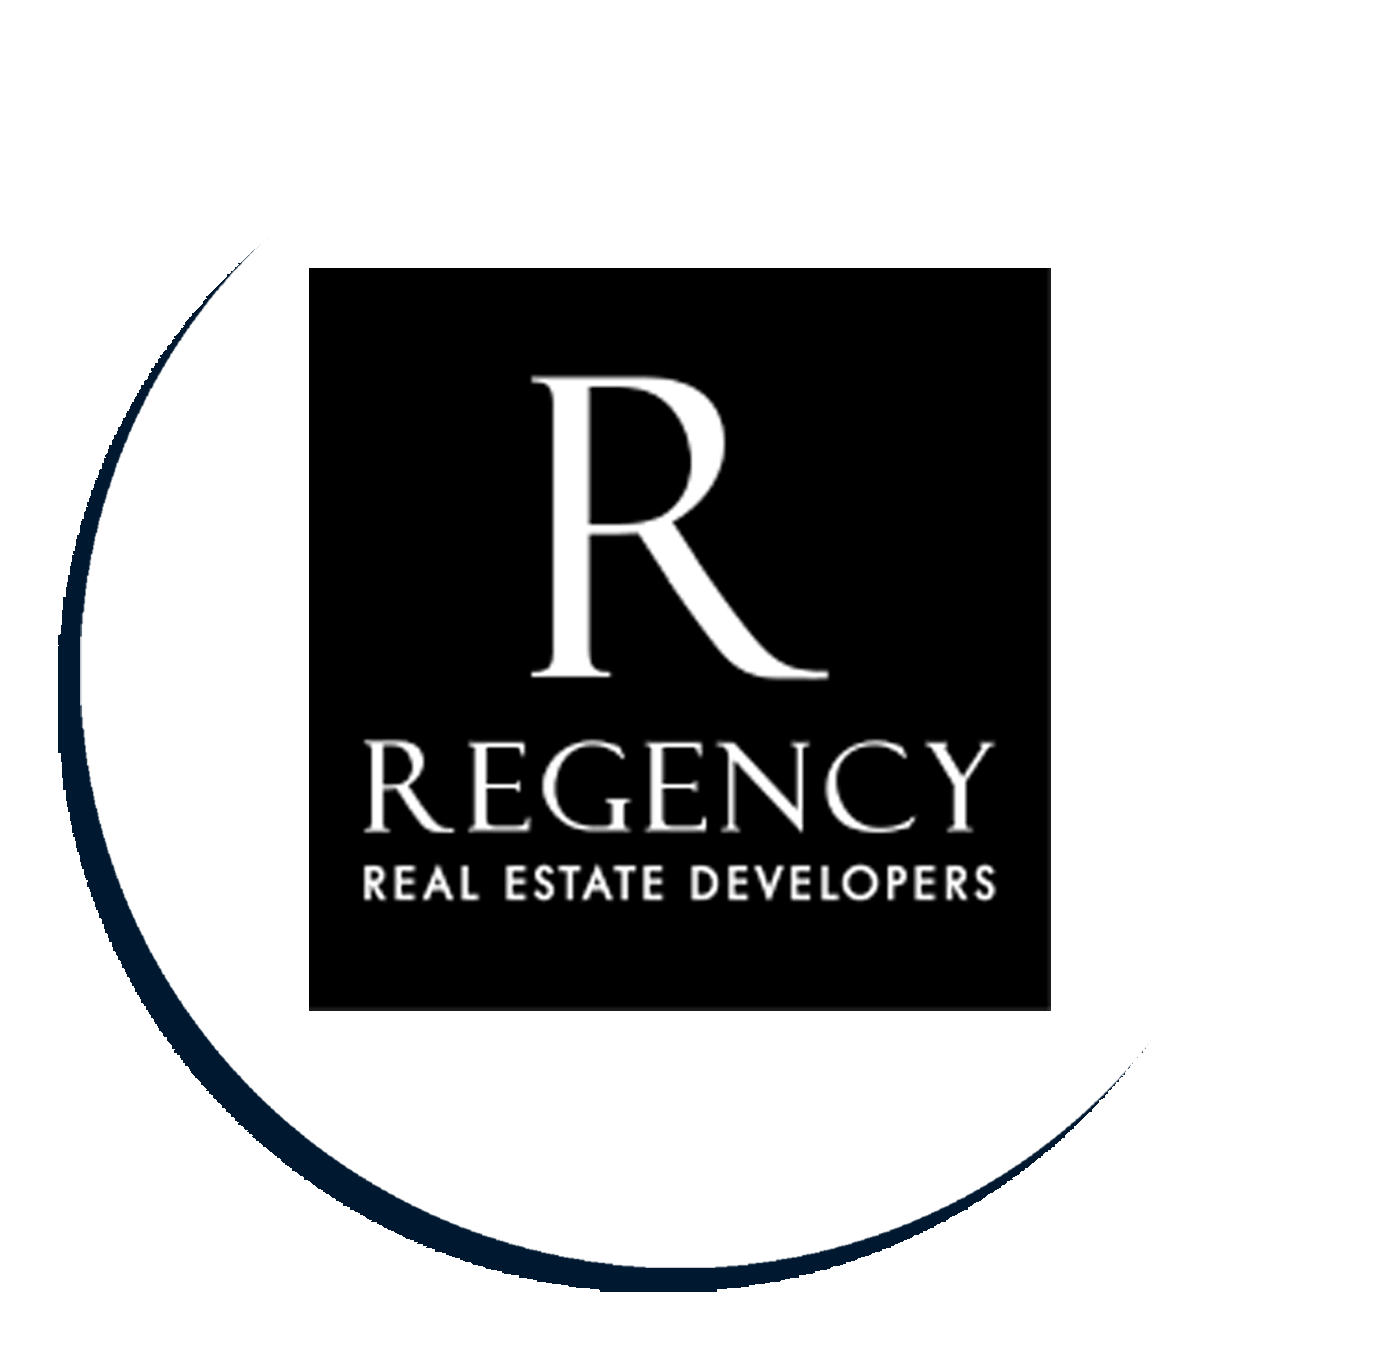 Regency Real Estate Developers